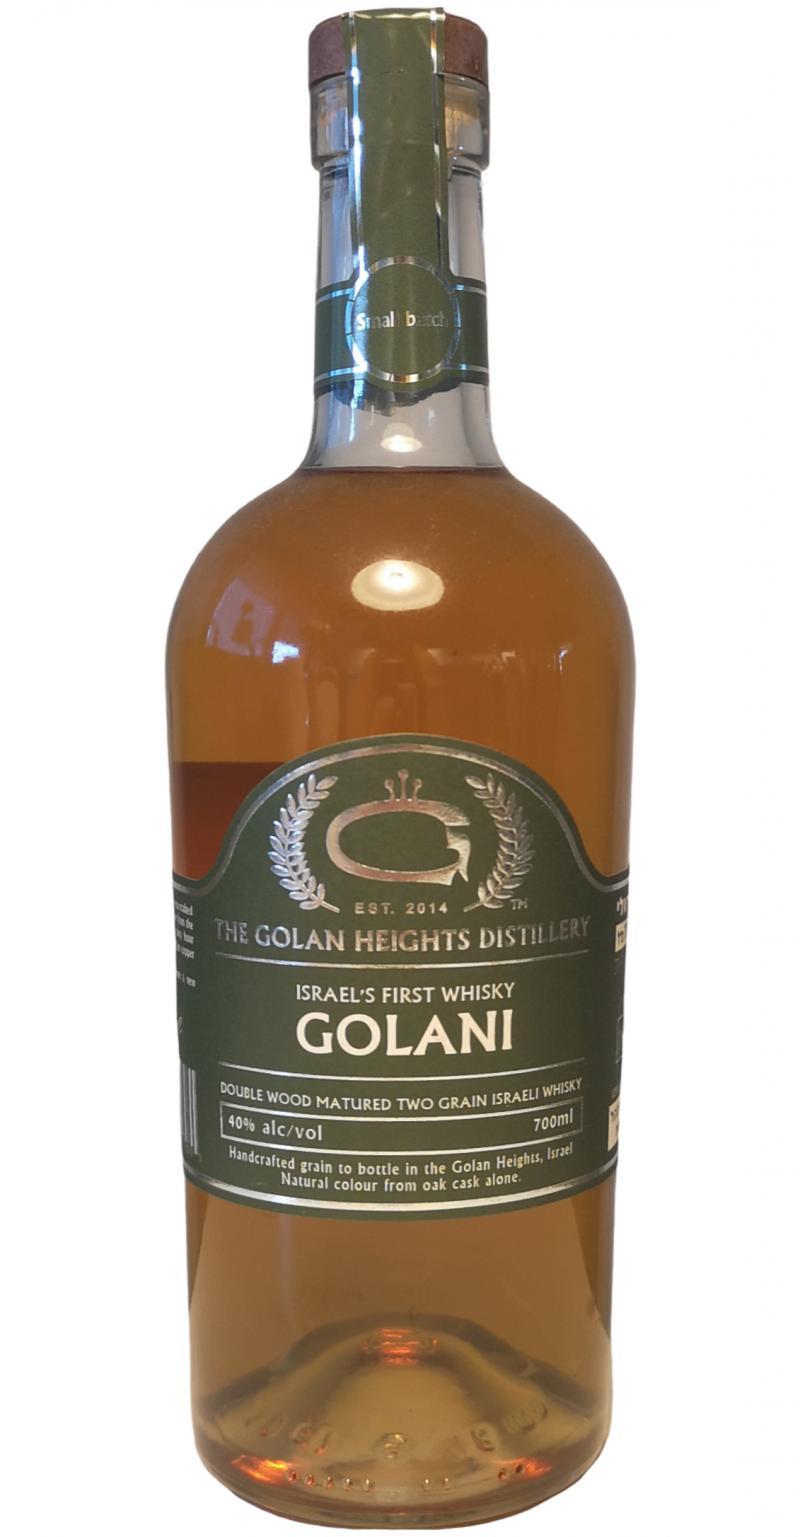 Golani Israel's First Whisky